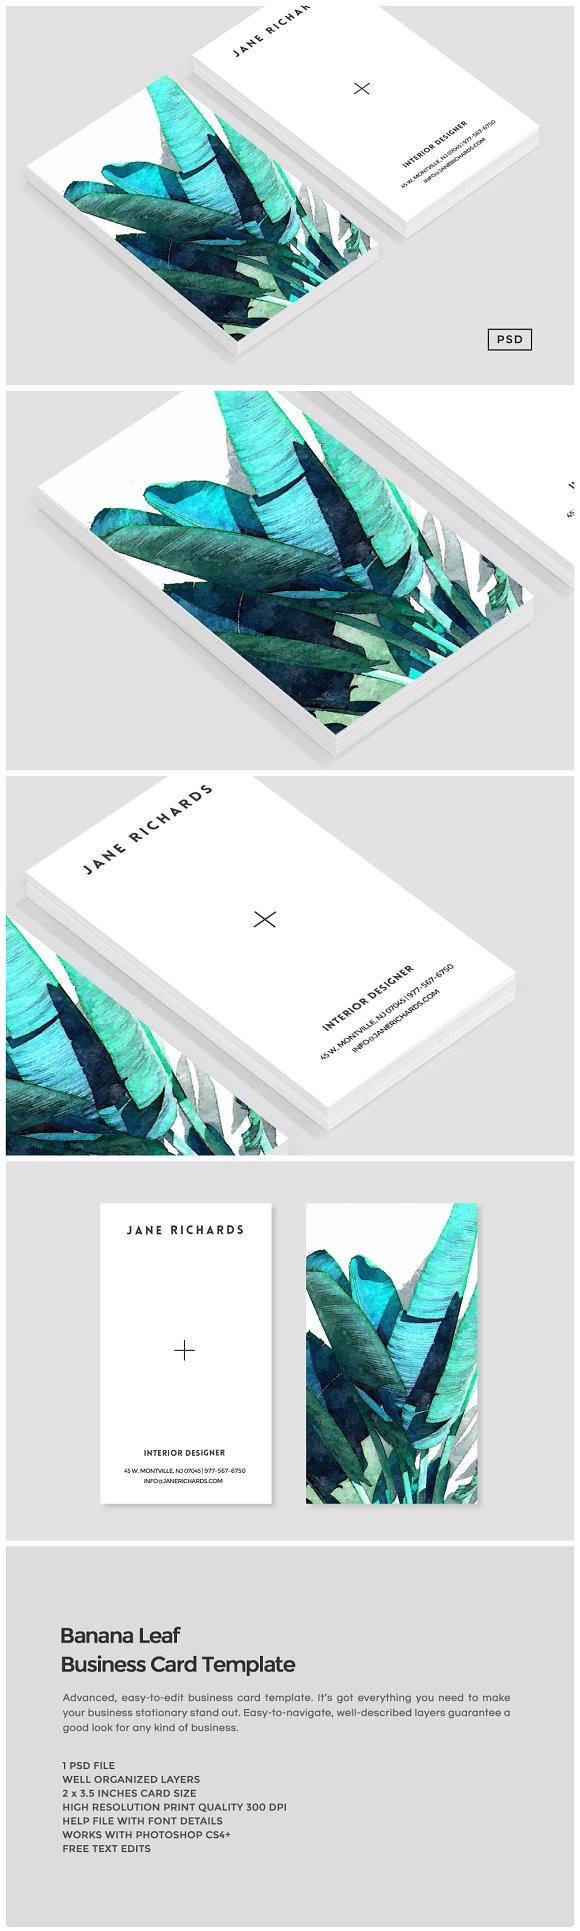 Banana leaf business card template business card templates banana leaf business card template business cards magicingreecefo Image collections